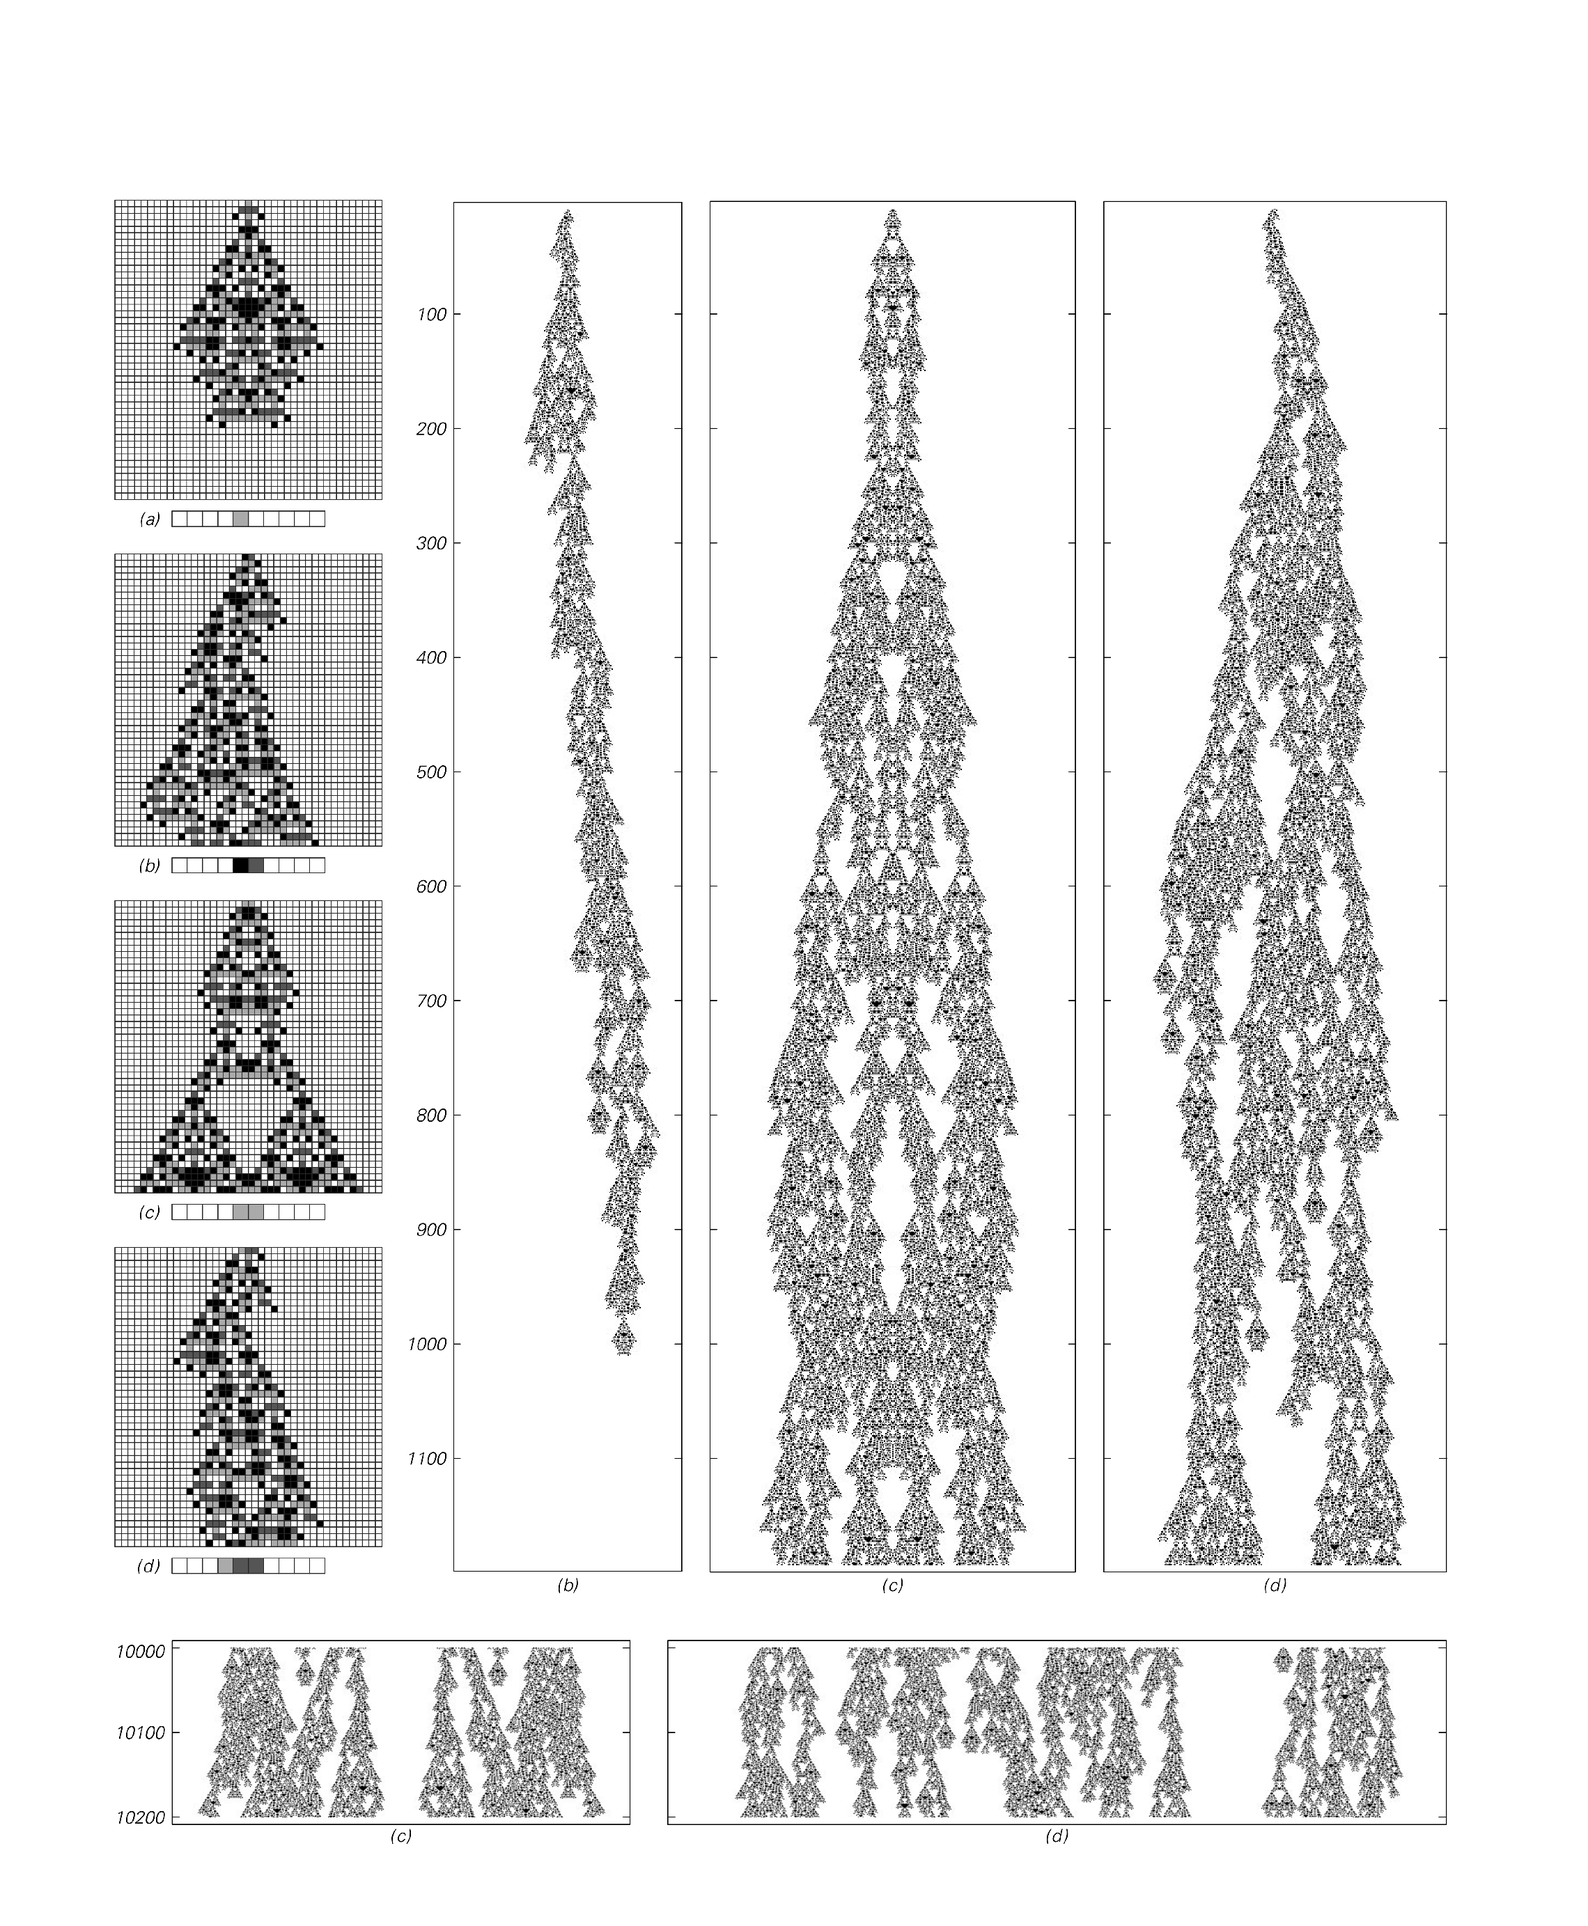 Cellular automaton evolution illustrating the phenomenon of undecidability